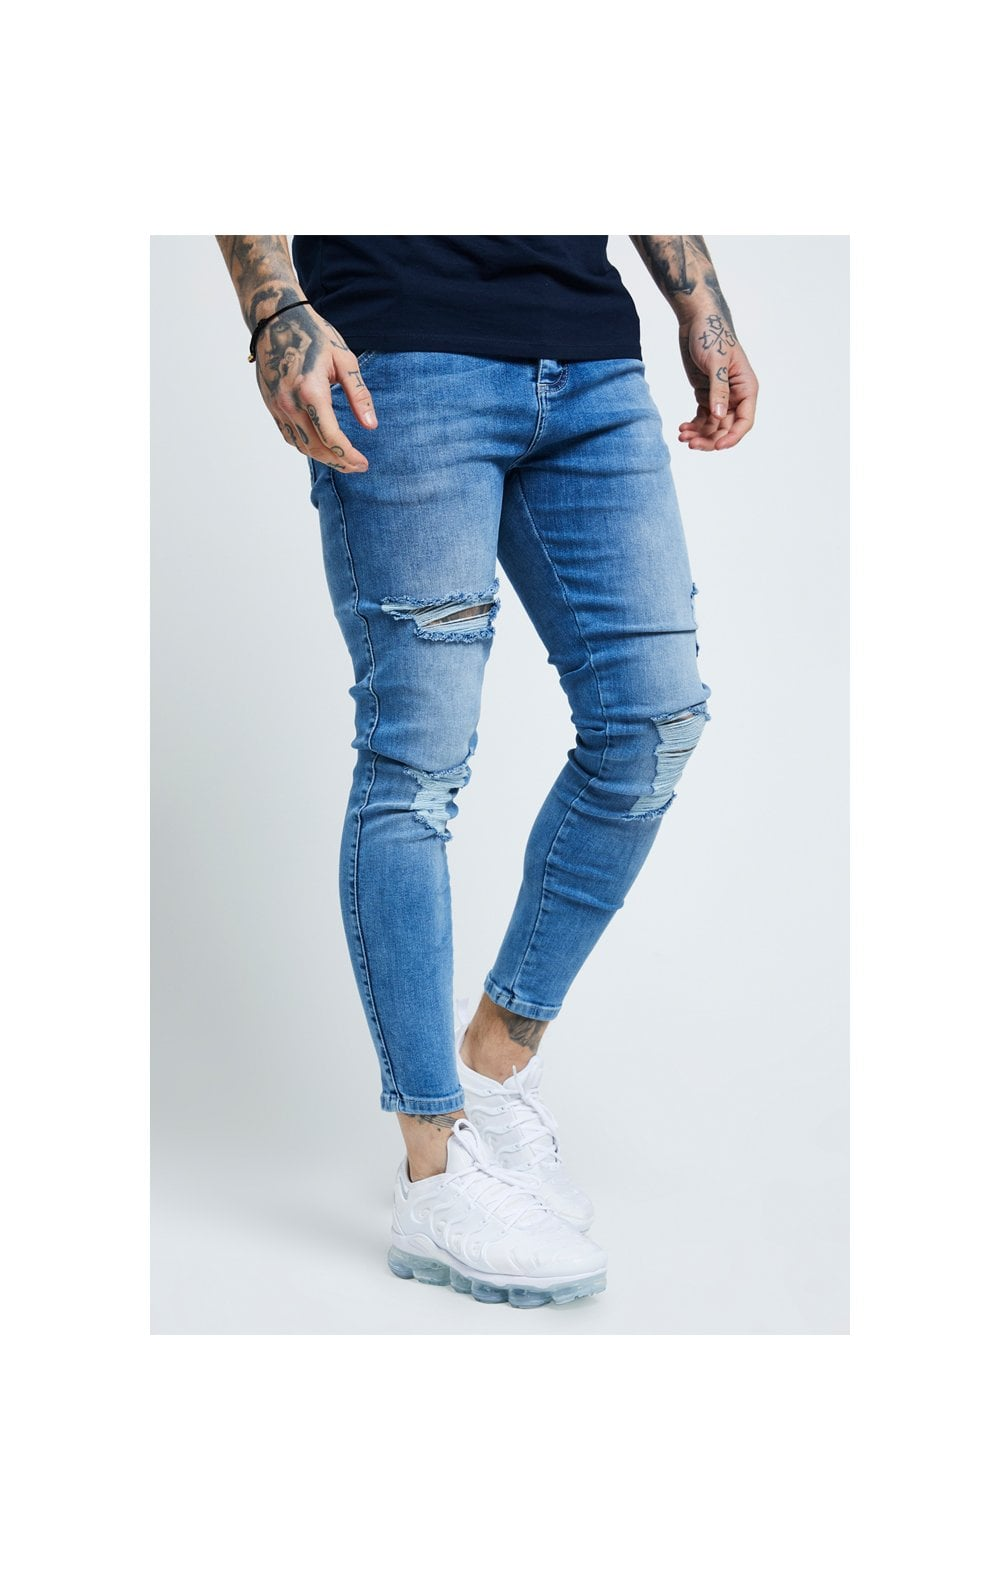 SikSilk Distressed Skinny Denims - Mid Wash (1)